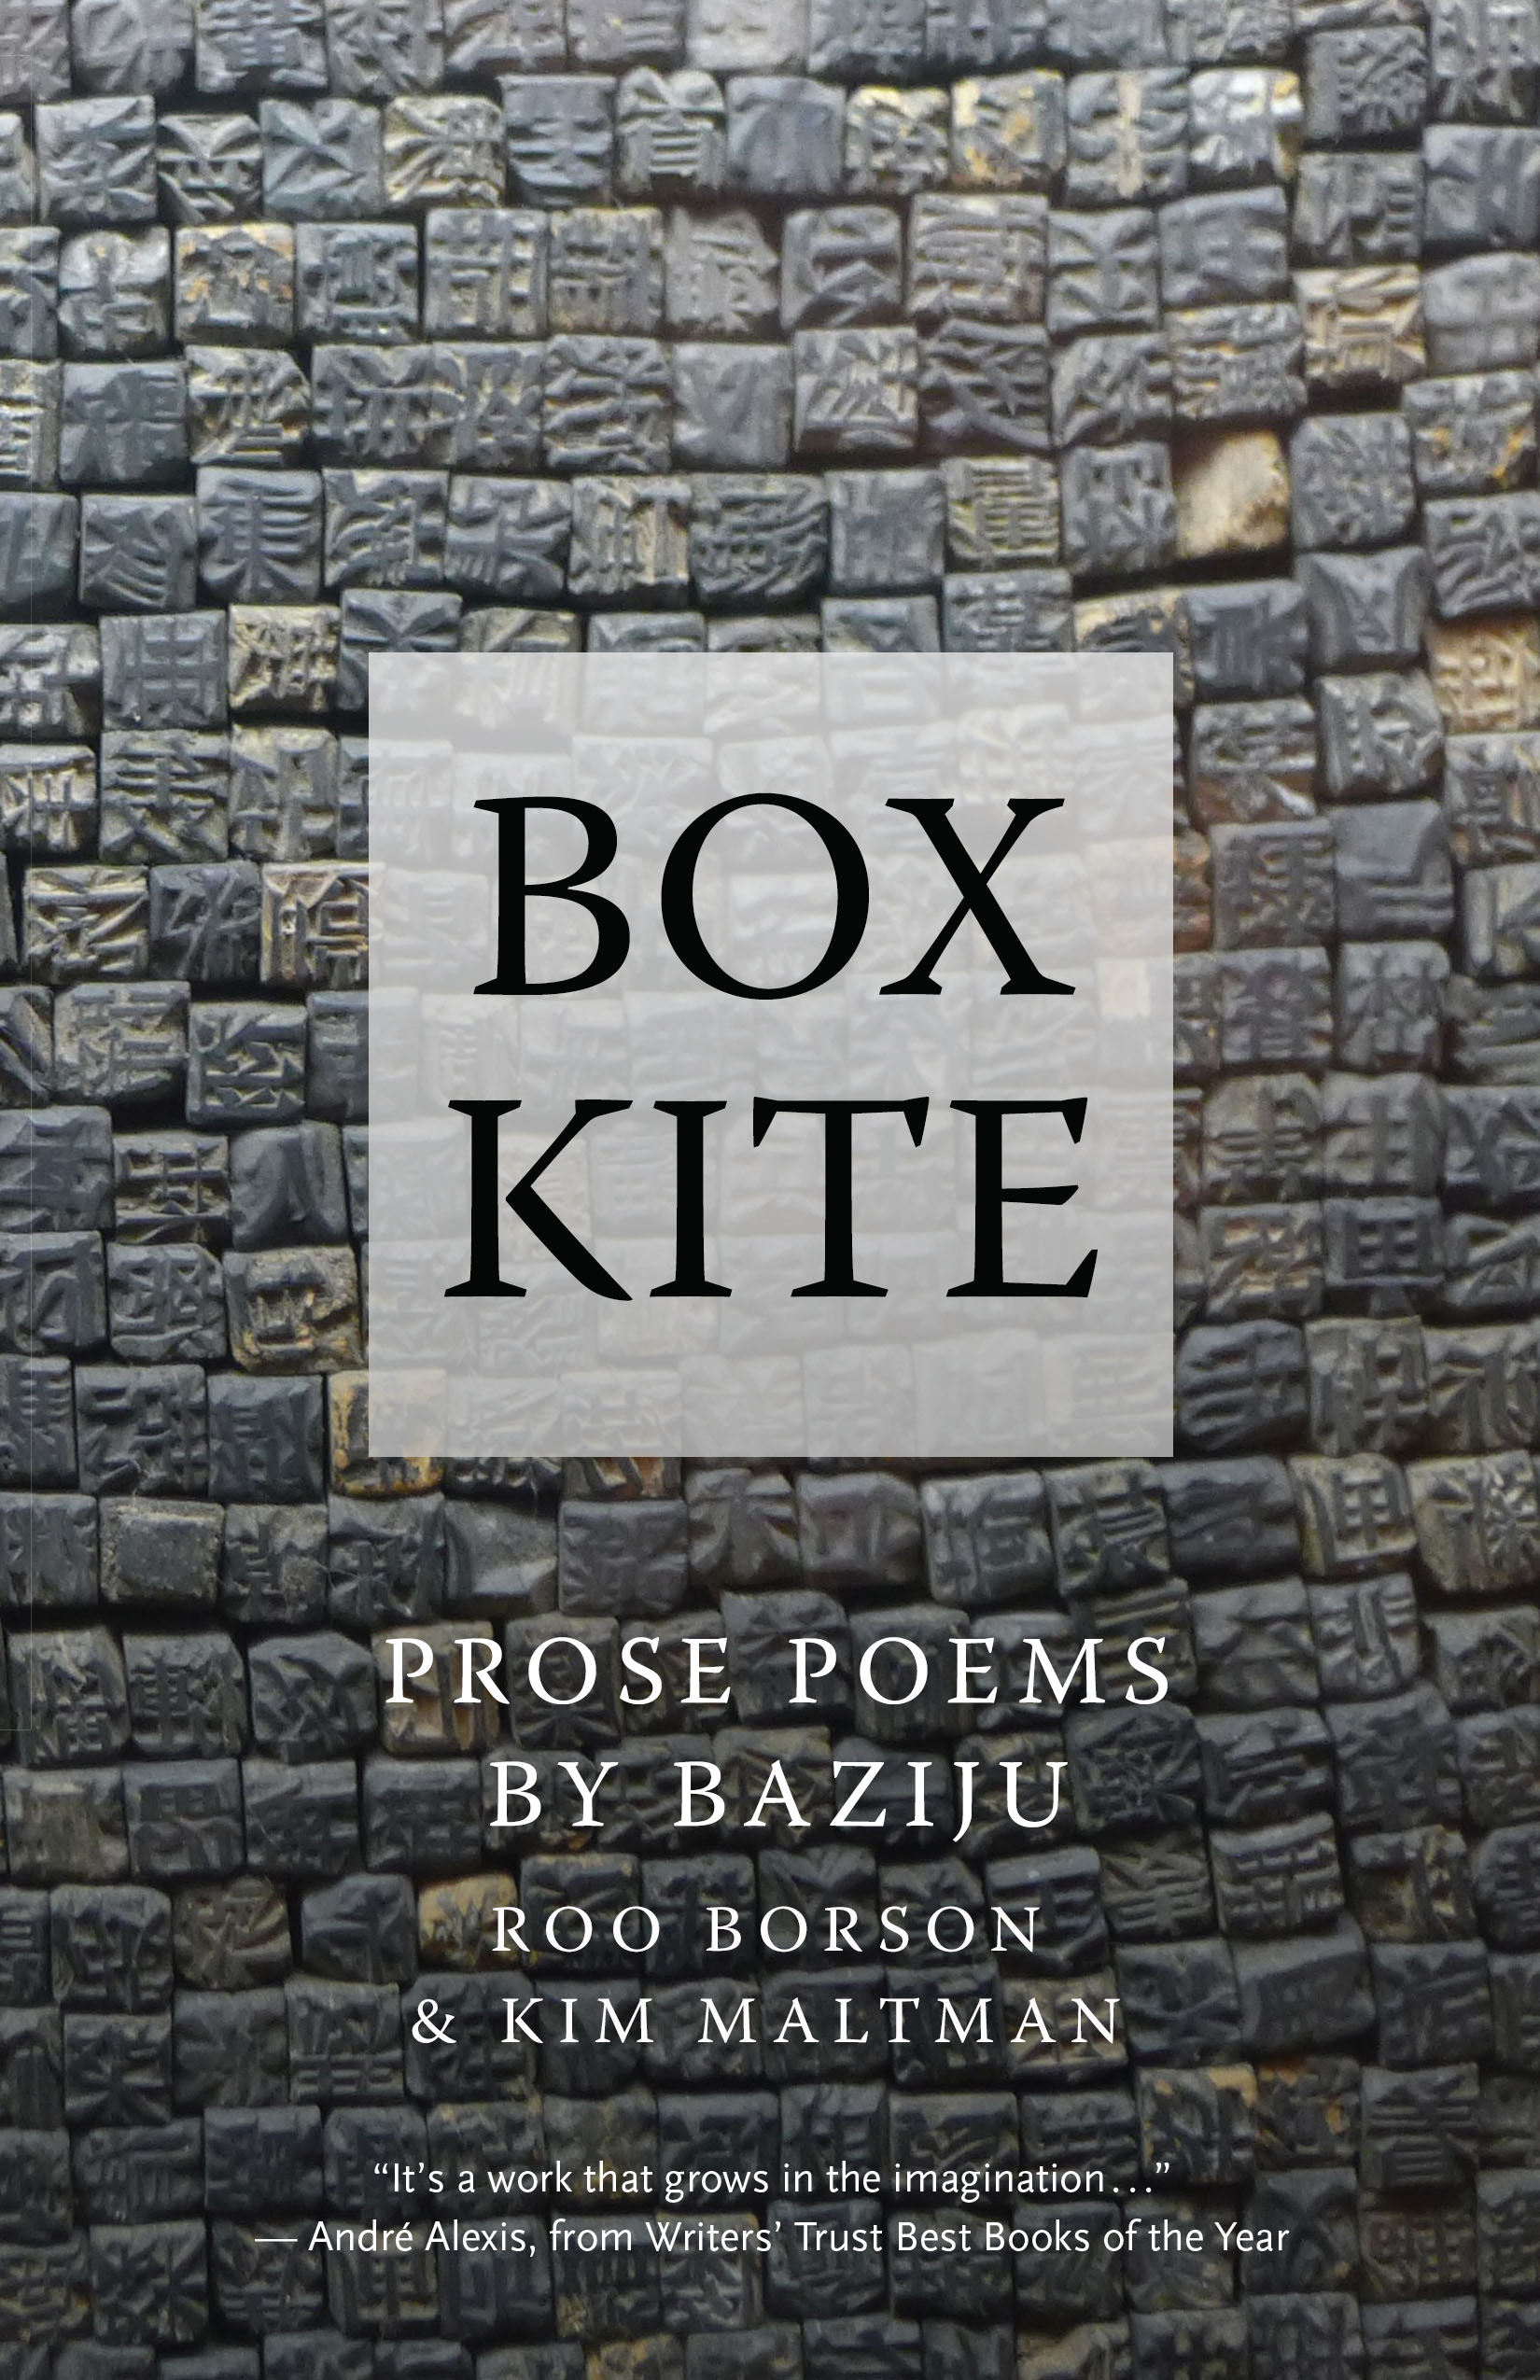 Box Kite by Kim Maltman and Roo Borson